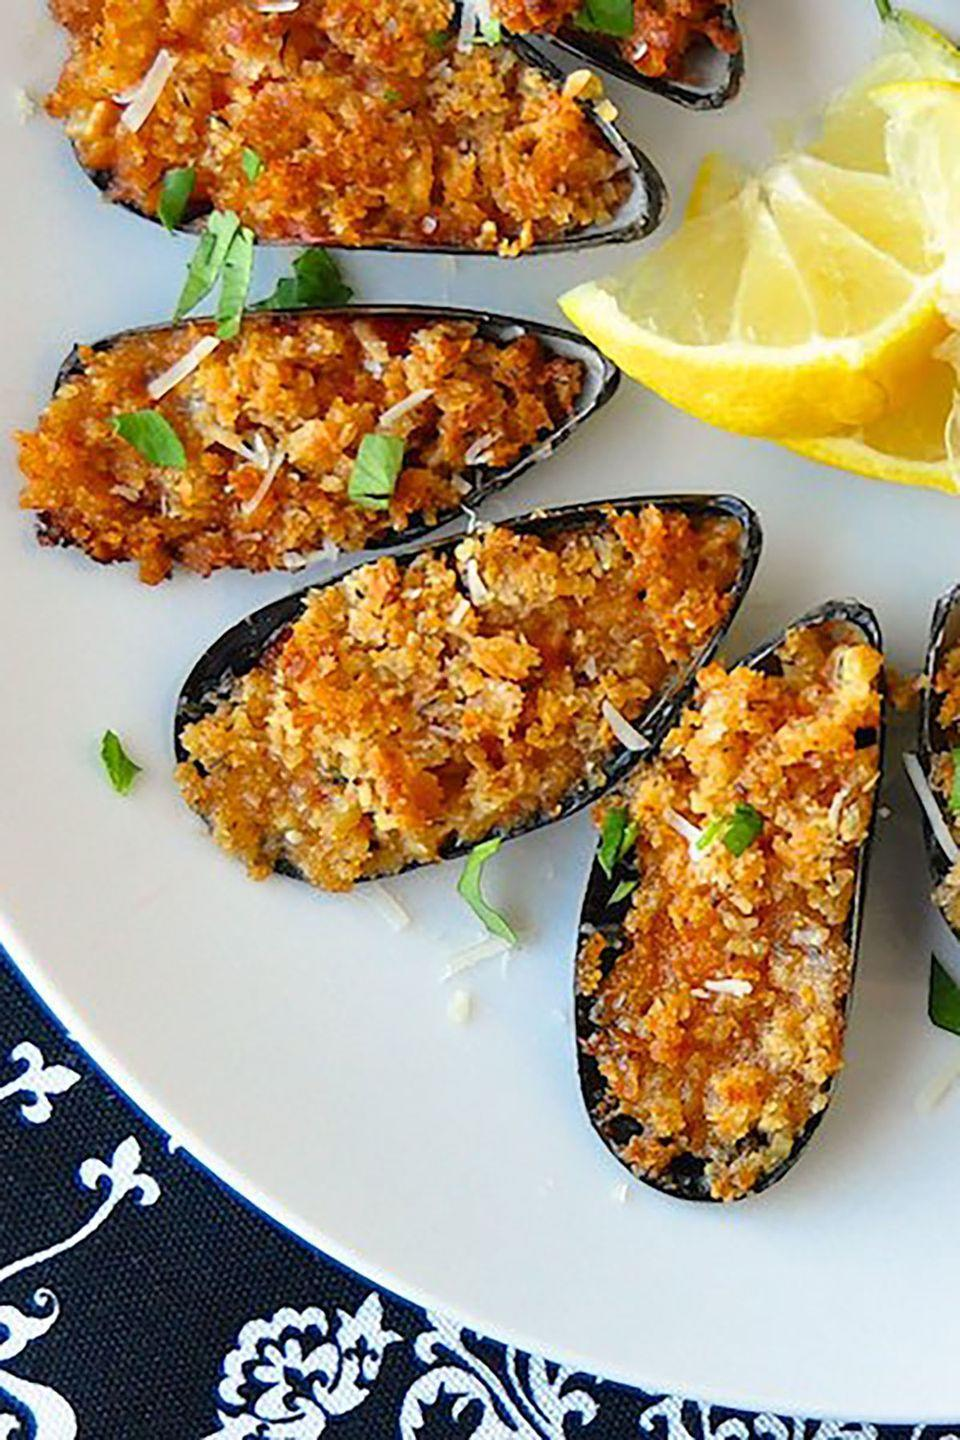 """<p>If you're planning a multi-course meal for your significant other, let the night begin with these tasty mussels, which can be prepared in advance and baked when ready for just 15 minutes.</p><p><strong>Get the recipe at <a href=""""https://www.rockrecipes.com/parmesan-marinara-baked-mussels/"""" rel=""""nofollow noopener"""" target=""""_blank"""" data-ylk=""""slk:Rock Recipes"""" class=""""link rapid-noclick-resp"""">Rock Recipes</a>.</strong></p>"""